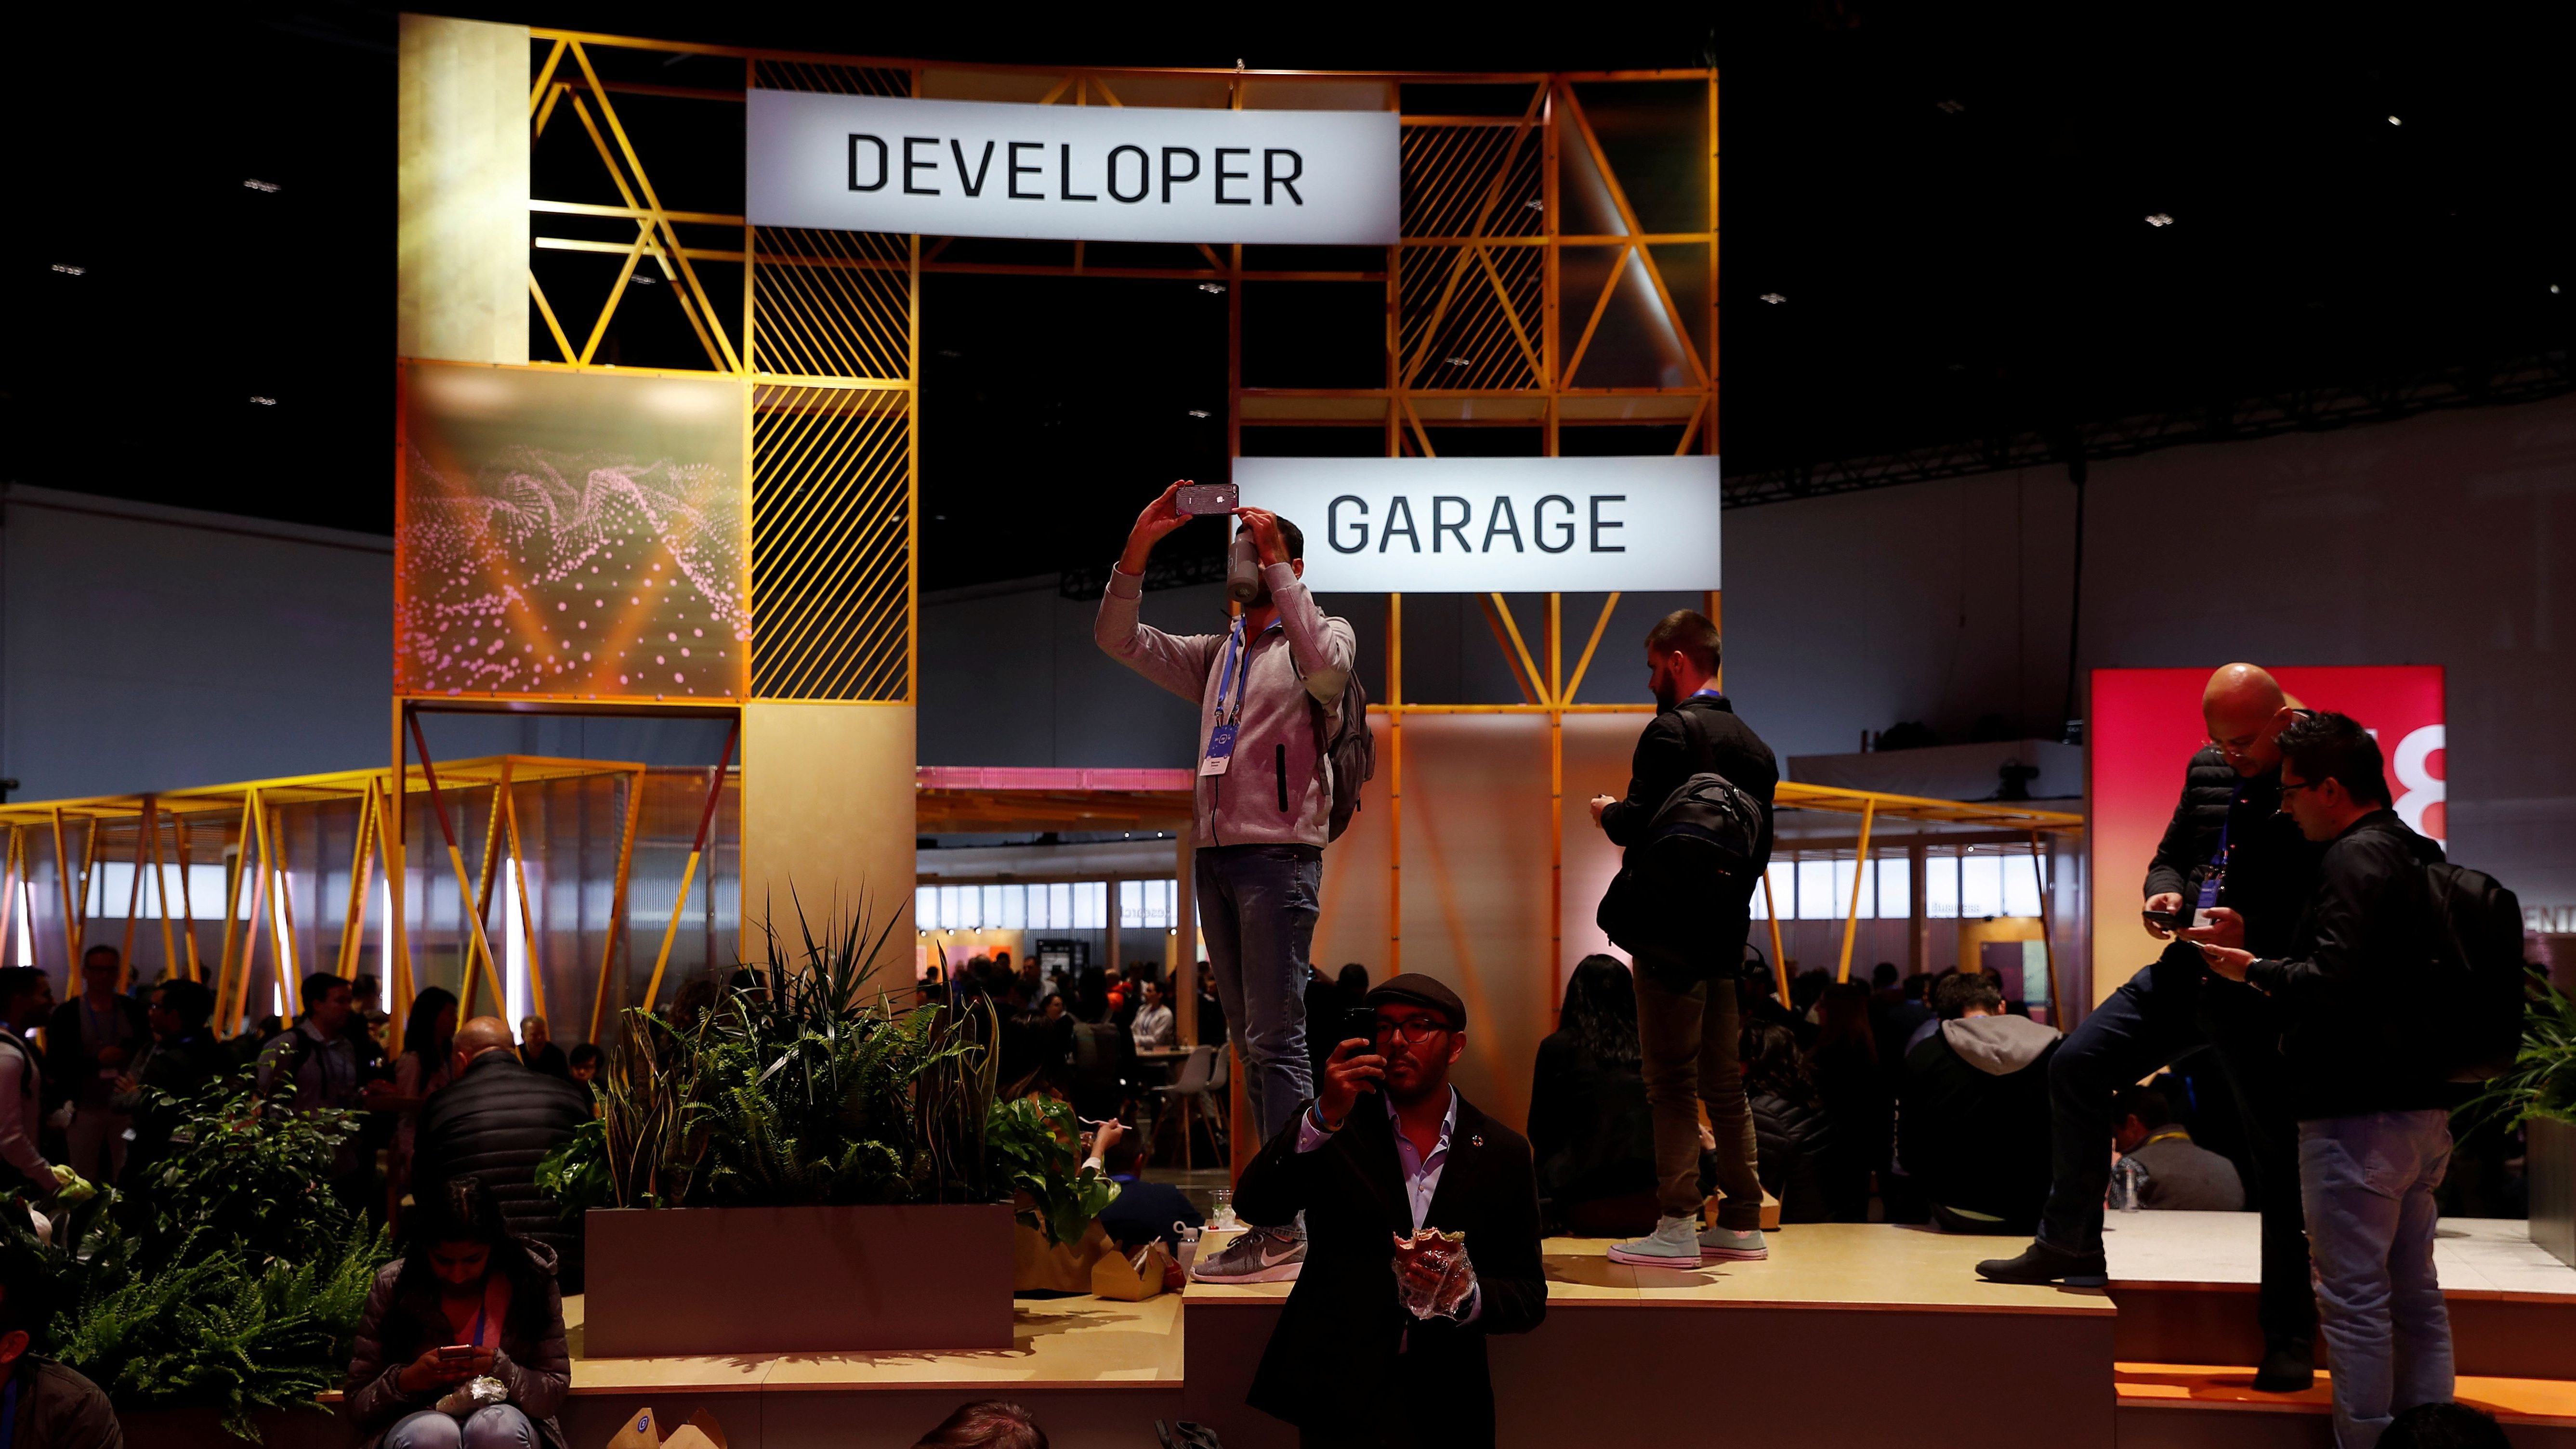 Attendees are seen in the festival hall during Facebook Inc's annual F8 developers conference in San Jose, California, U.S. May 1, 2018. REUTERS/Stephen Lam